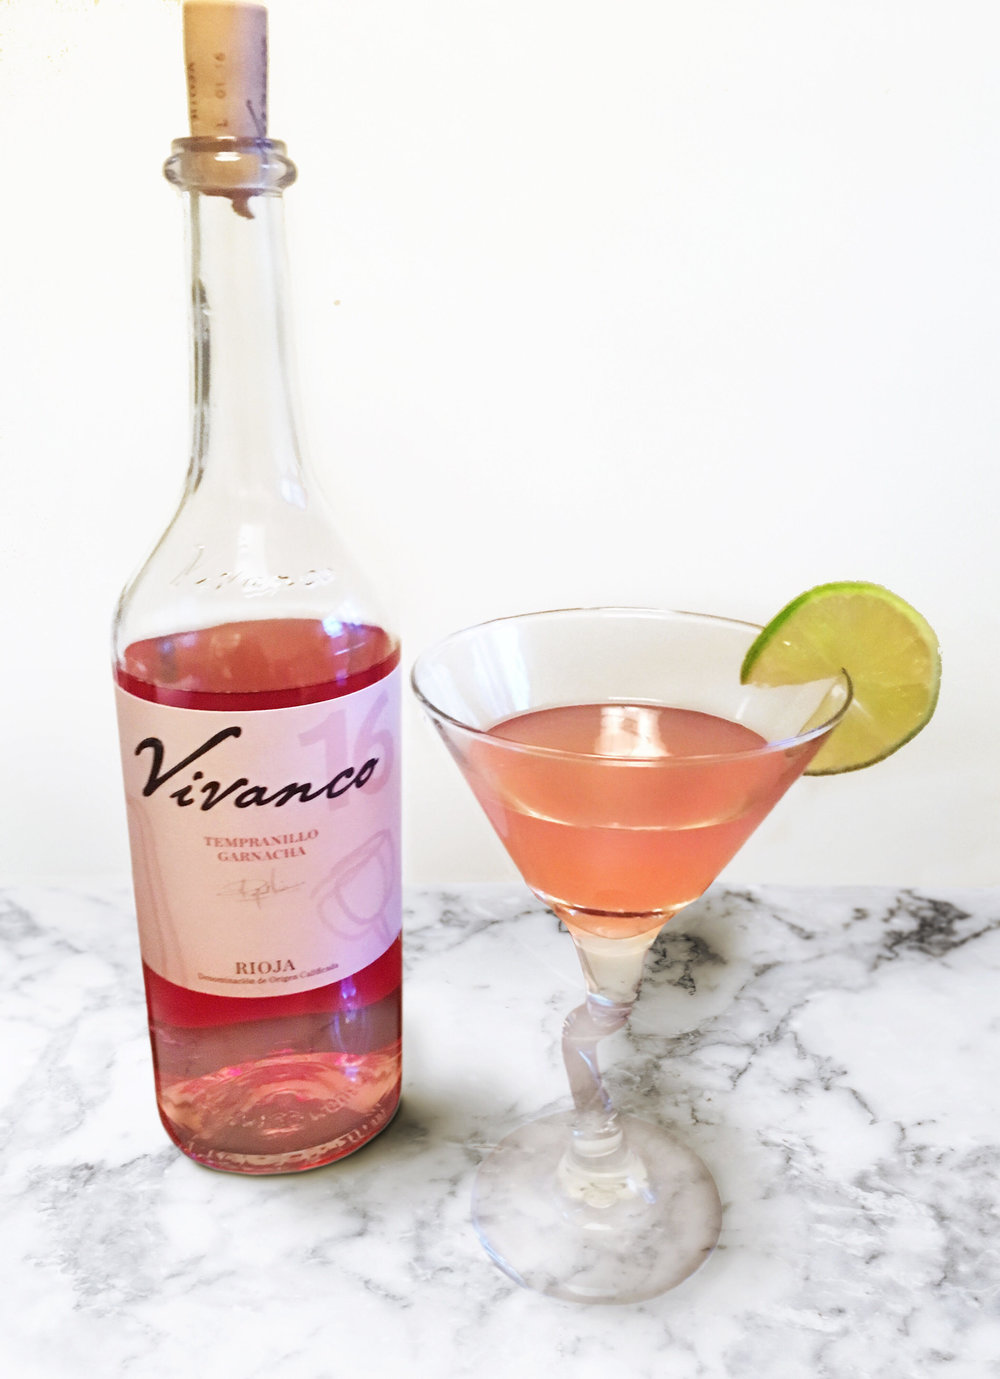 This was a hit with guests when I hosted a few friends, I found my summer drink!